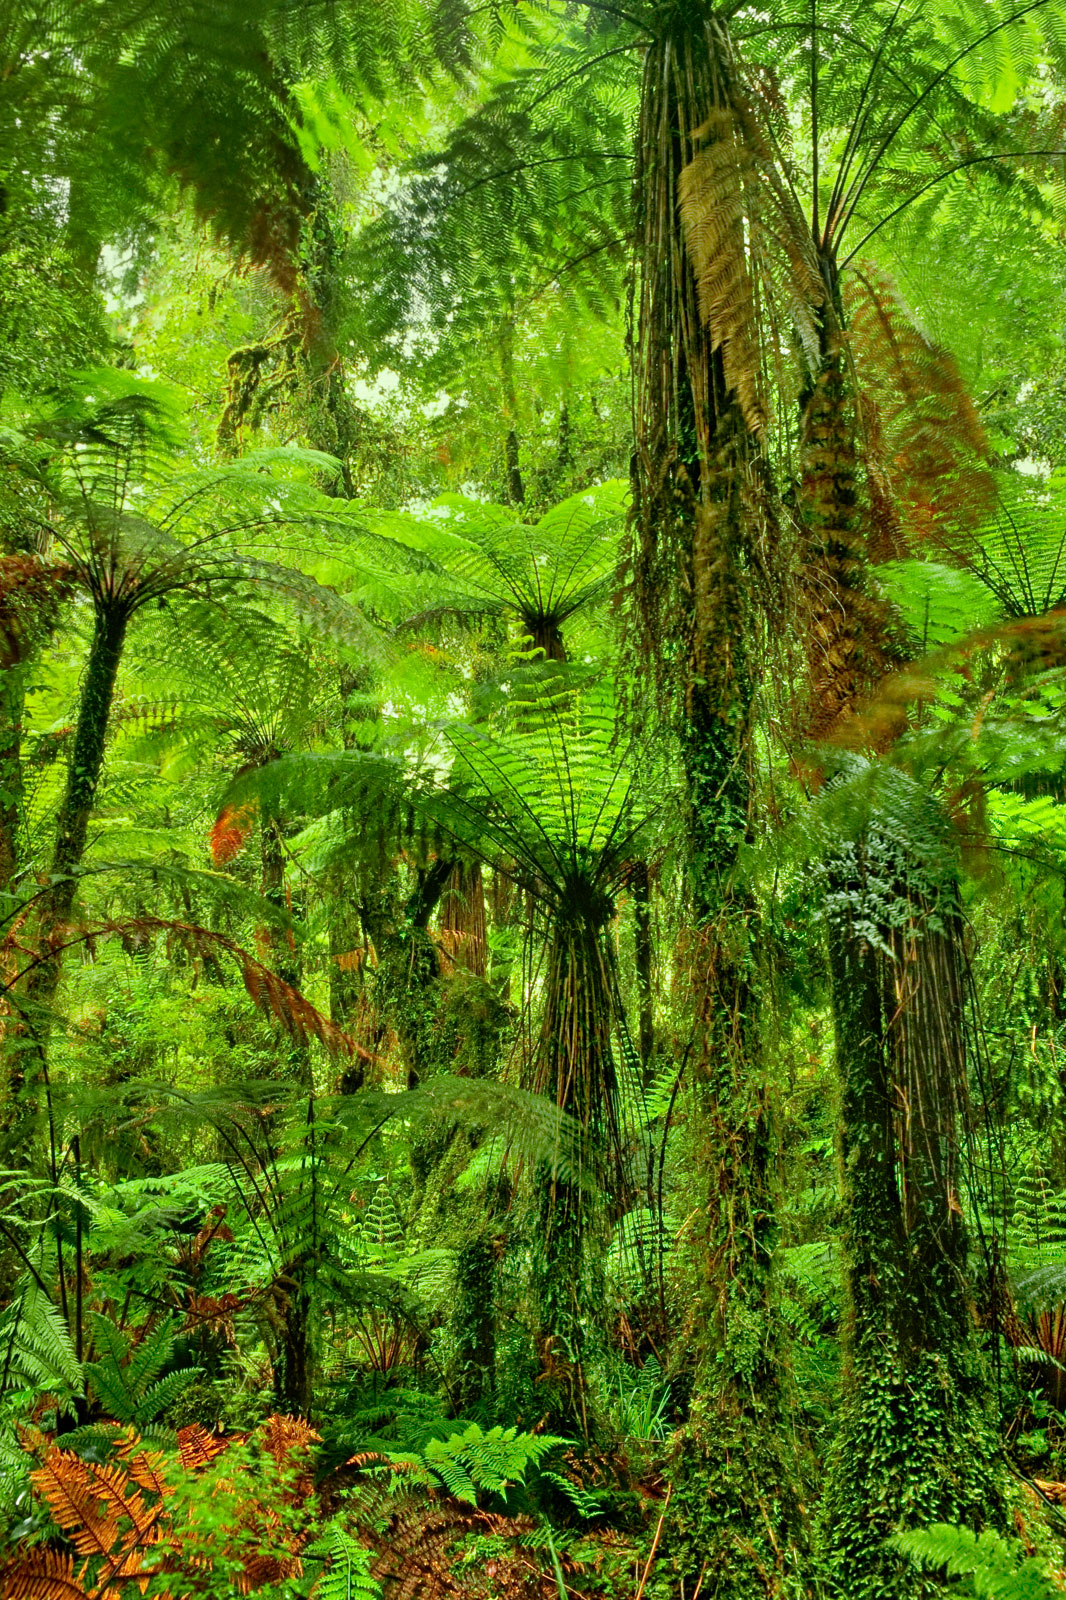 Tree ferns in forest, Whirinaki Conservation Park, New Zealand